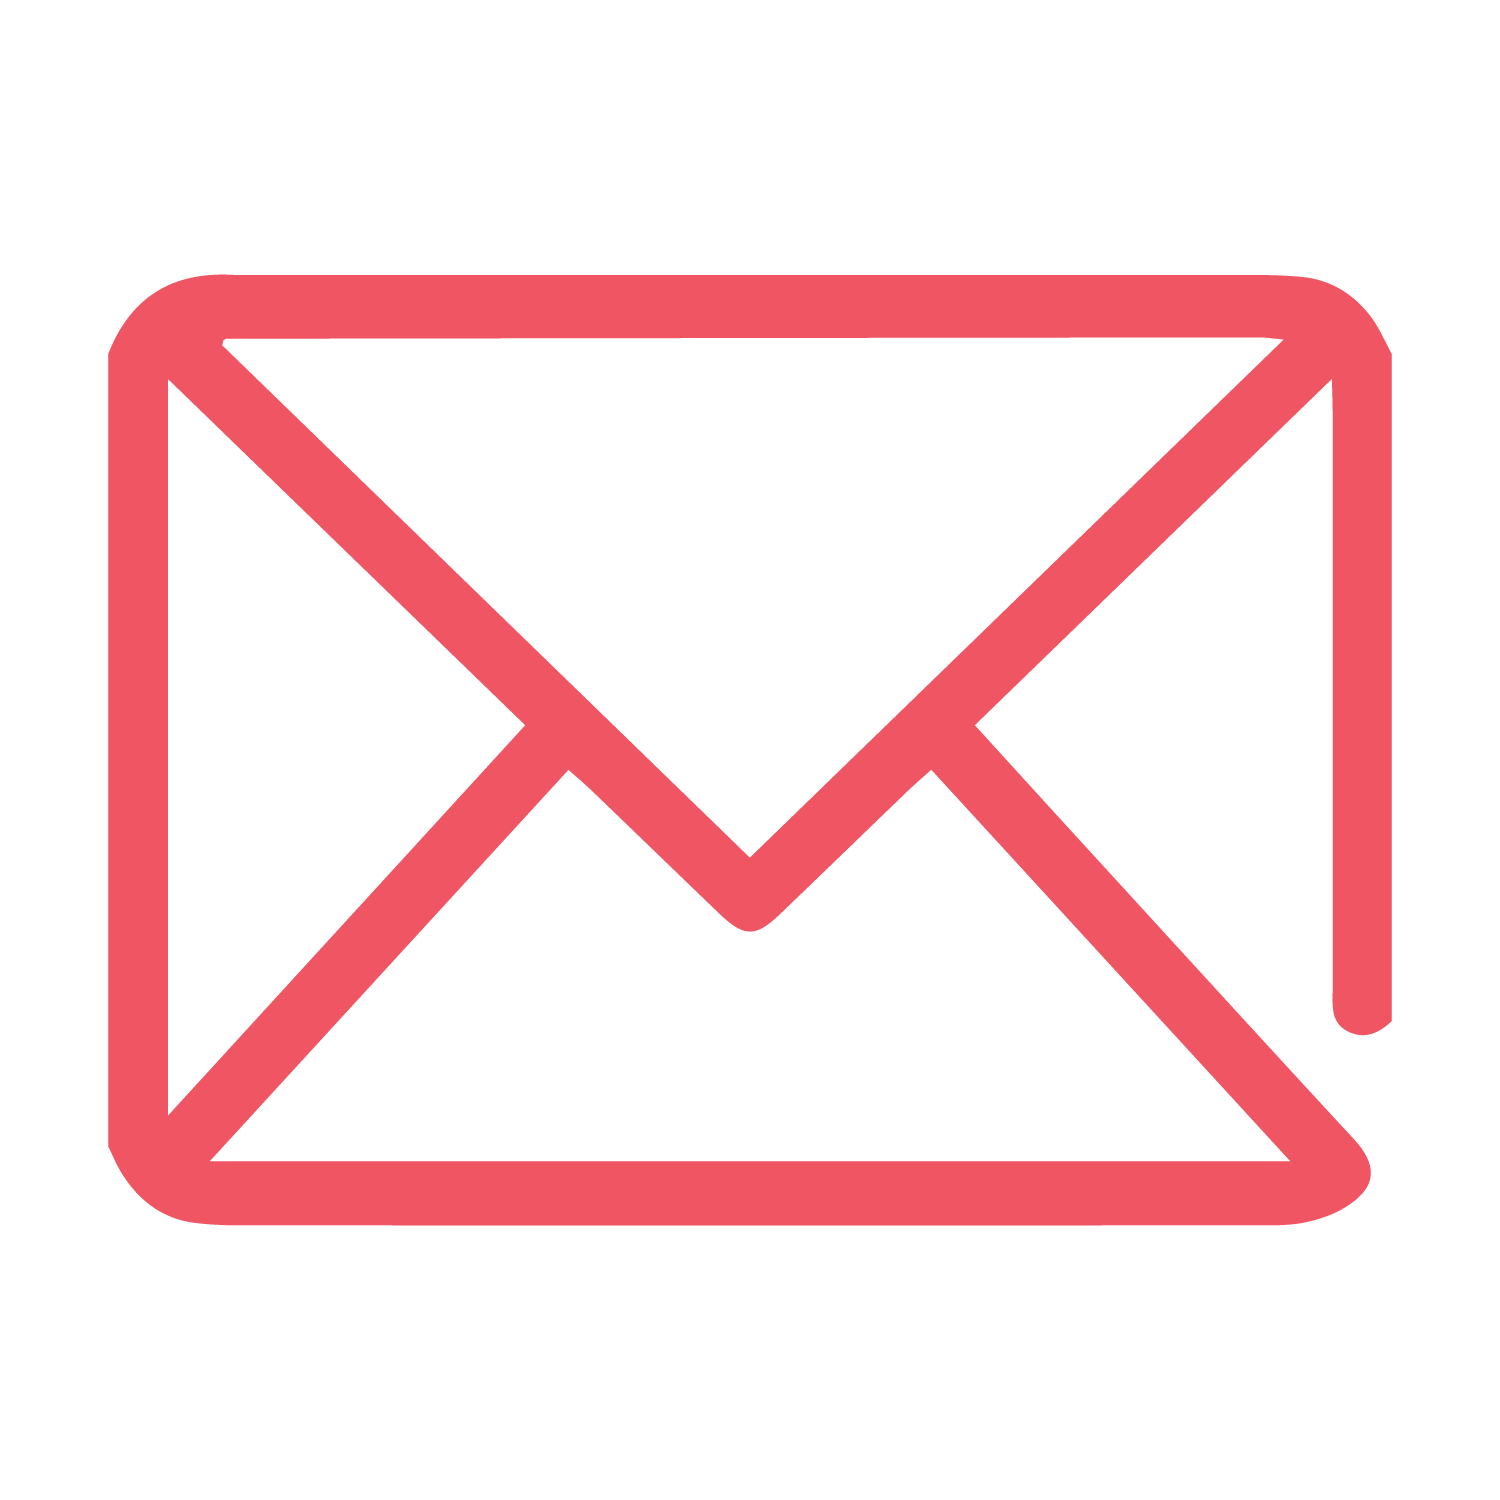 email marketing - Tell your business story, stay connected with your clients, grow your audience while increasing sales. Email marketing allows you to have full control over relationships with your subscribers. Stay in touch, close sales!